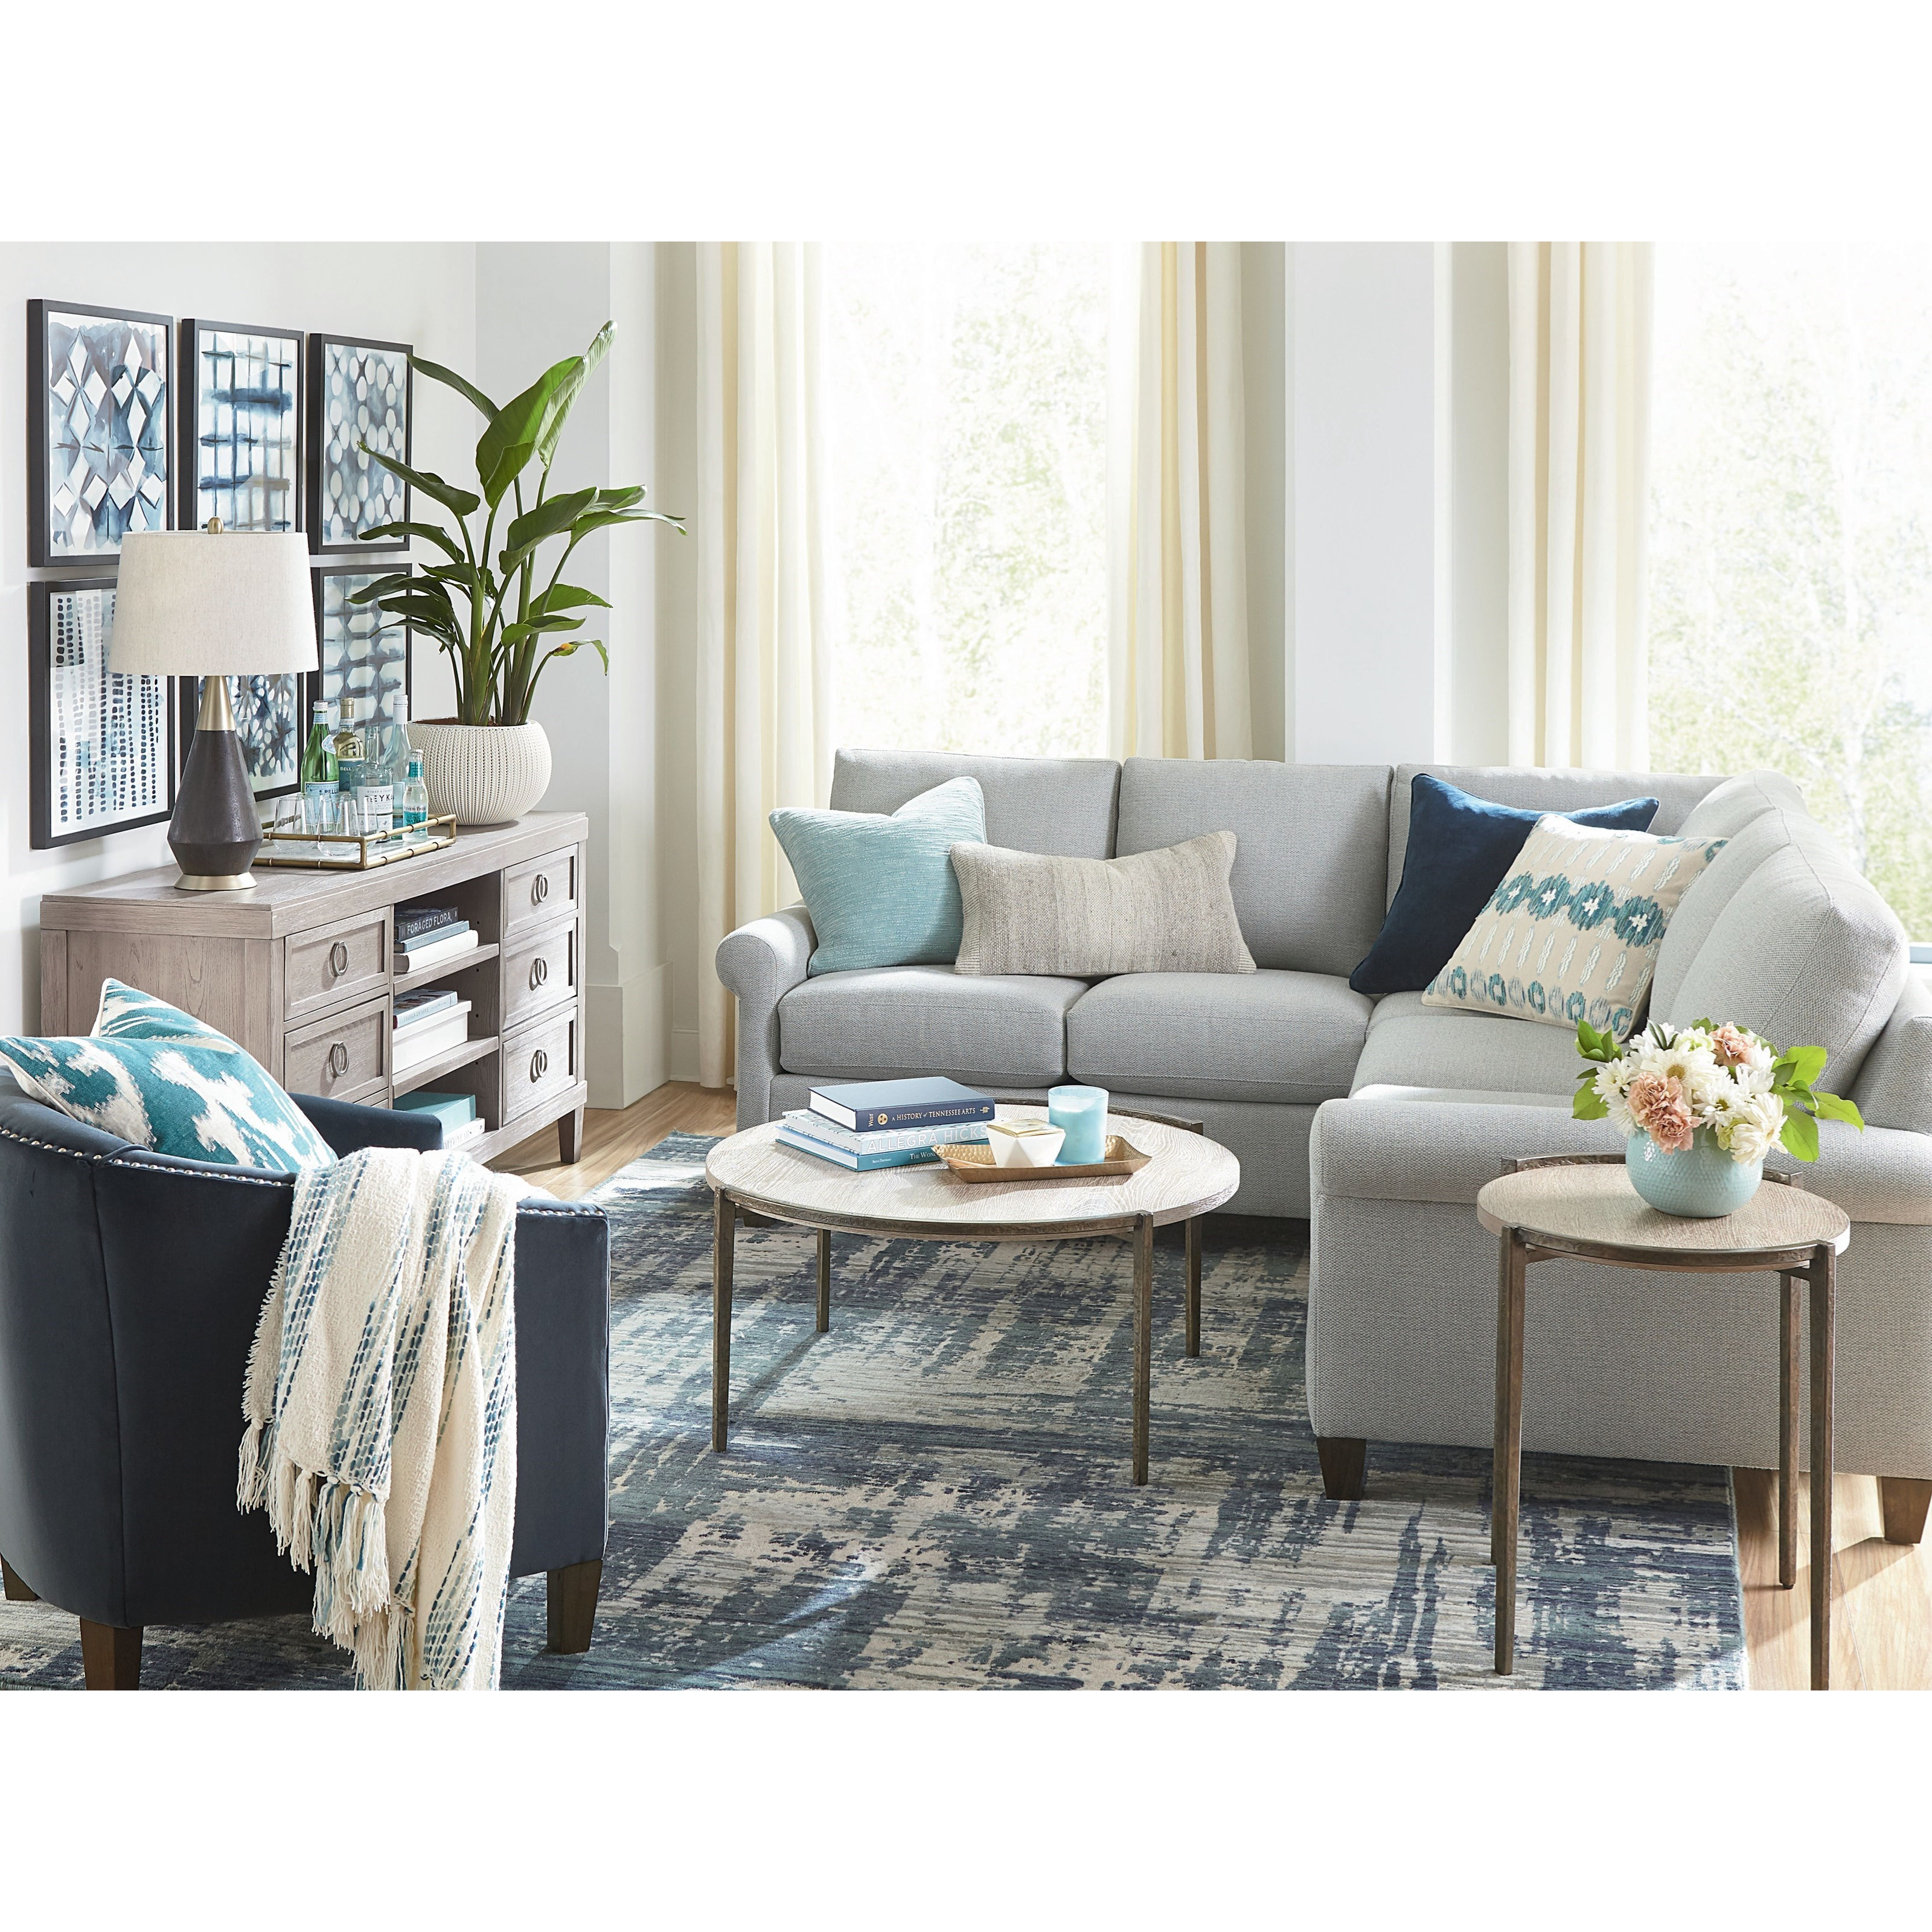 Spencer Right-Facing 2-Piece Sectional by Bassett at Bassett of Cool Springs